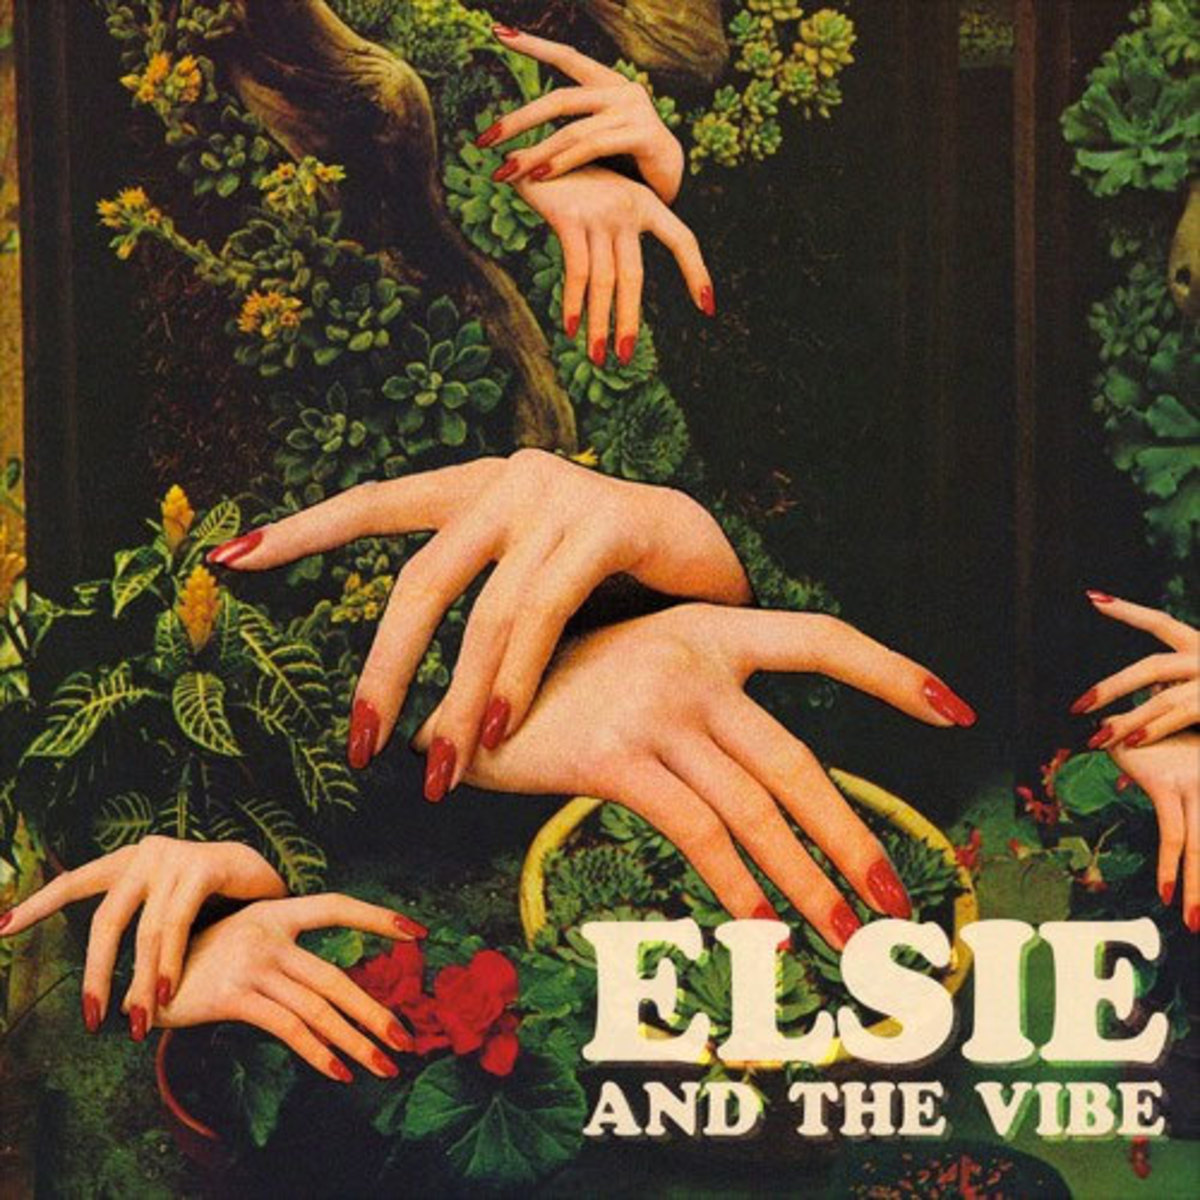 elsie-and-the-vibe-just-dont.jpg